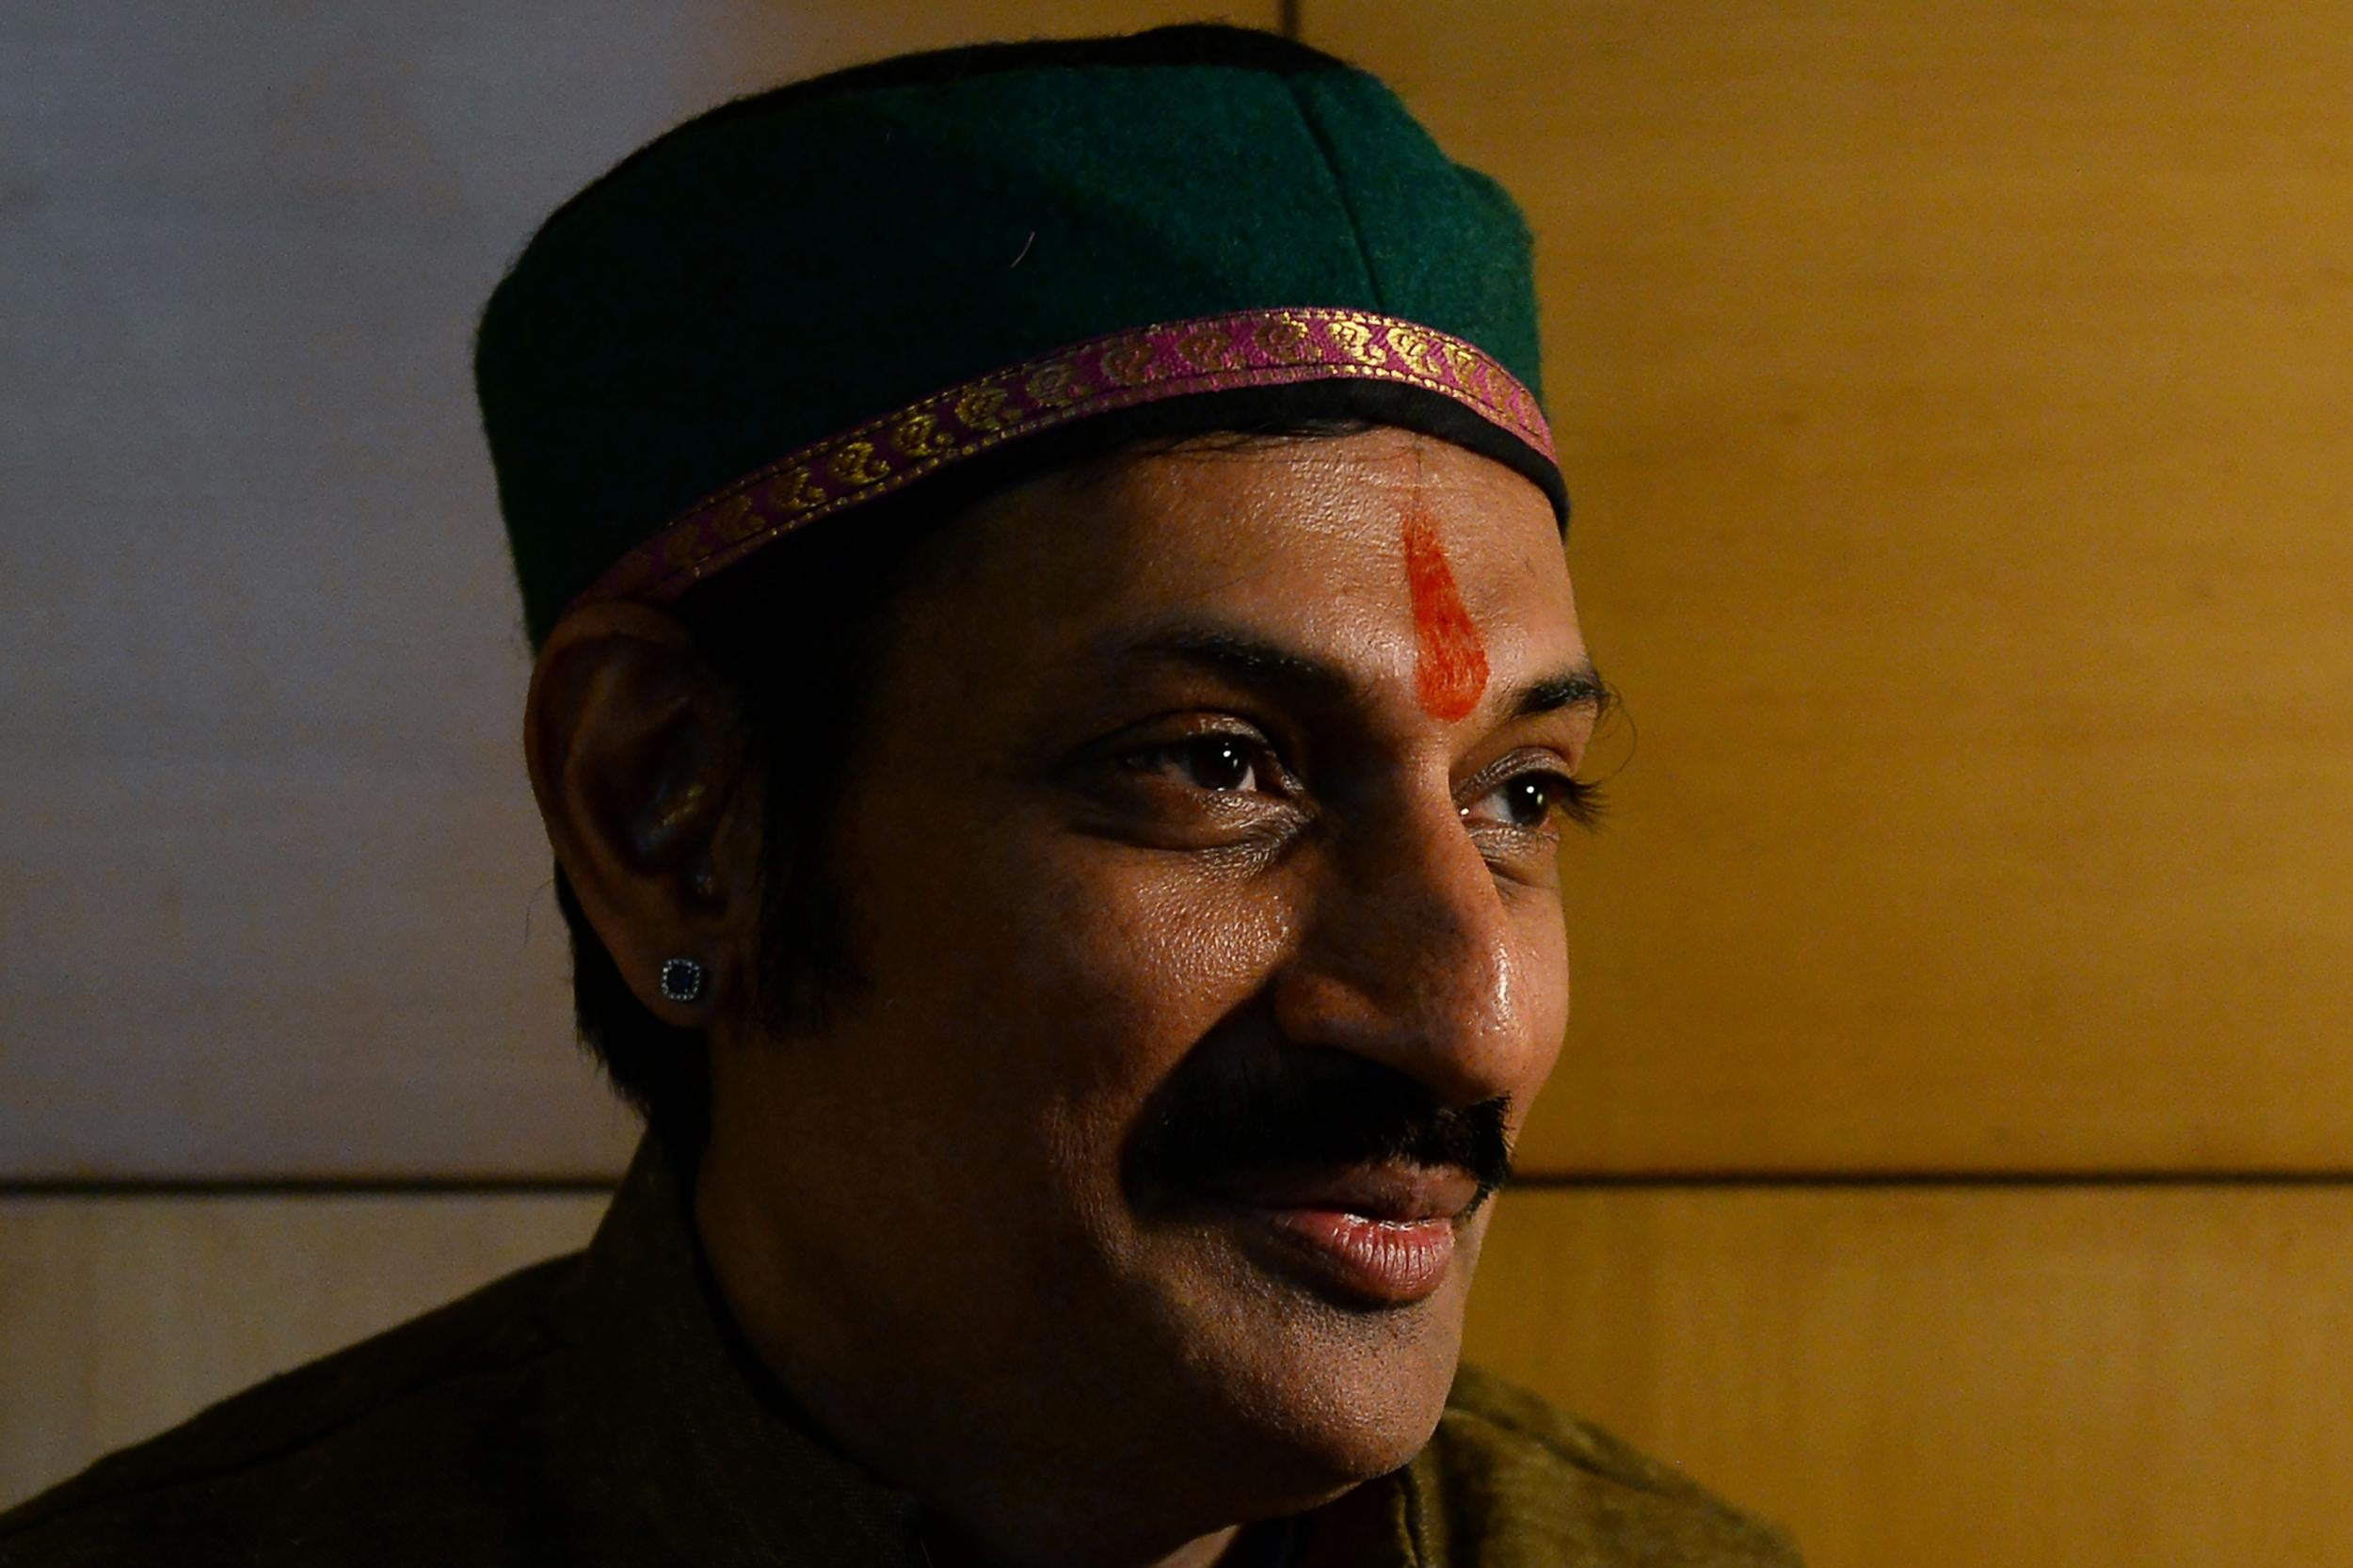 India's gay prince opens his palace to LGBT people